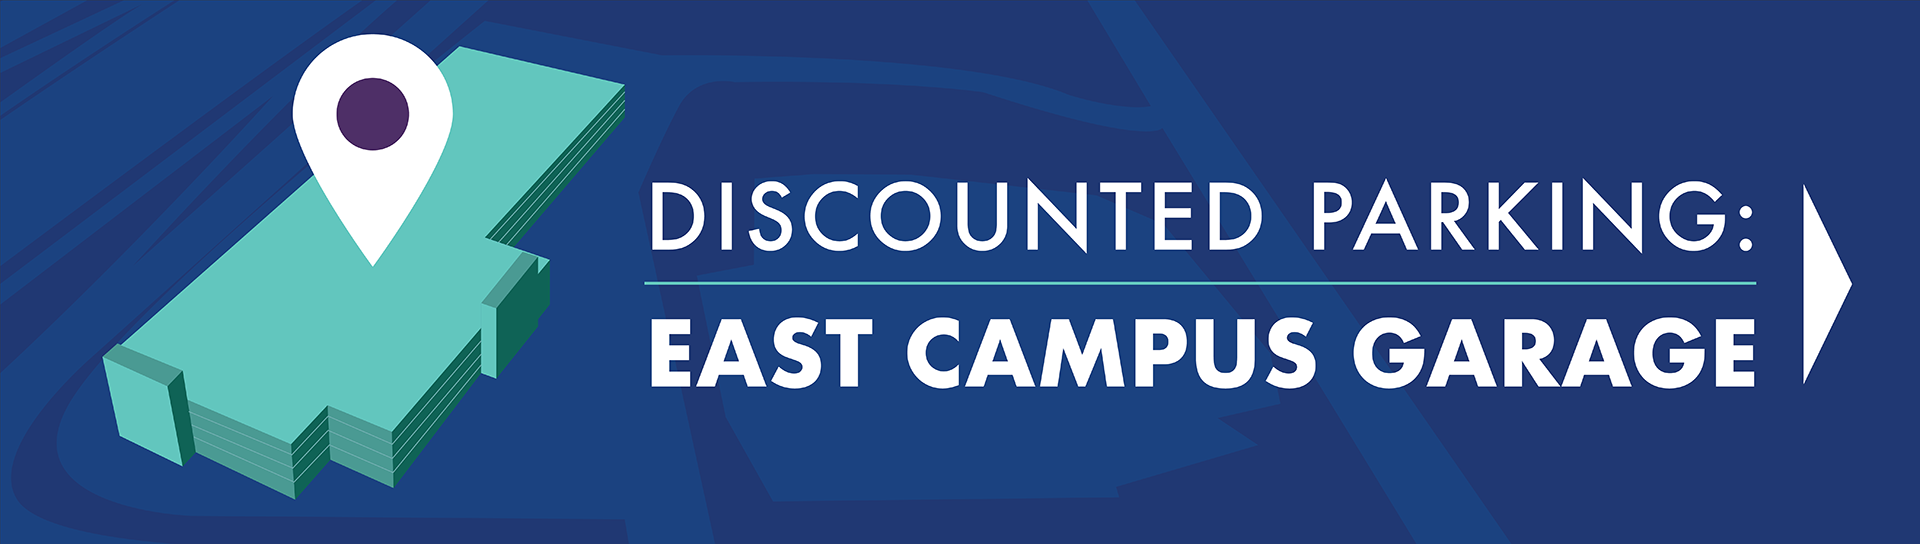 Discount parking east campus garage